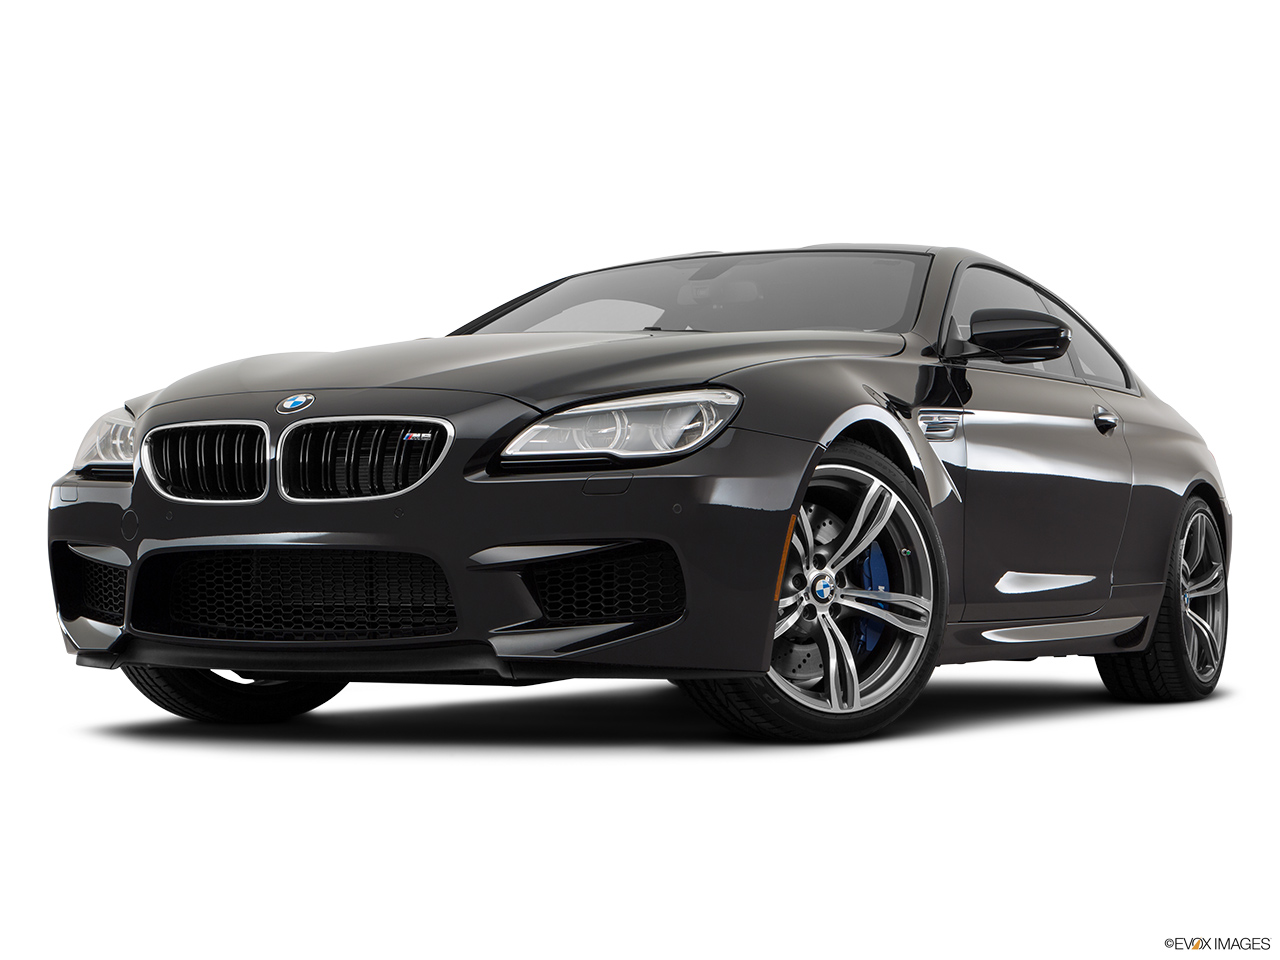 2016 bmw m6 coupe prices in bahrain gulf specs reviews. Black Bedroom Furniture Sets. Home Design Ideas